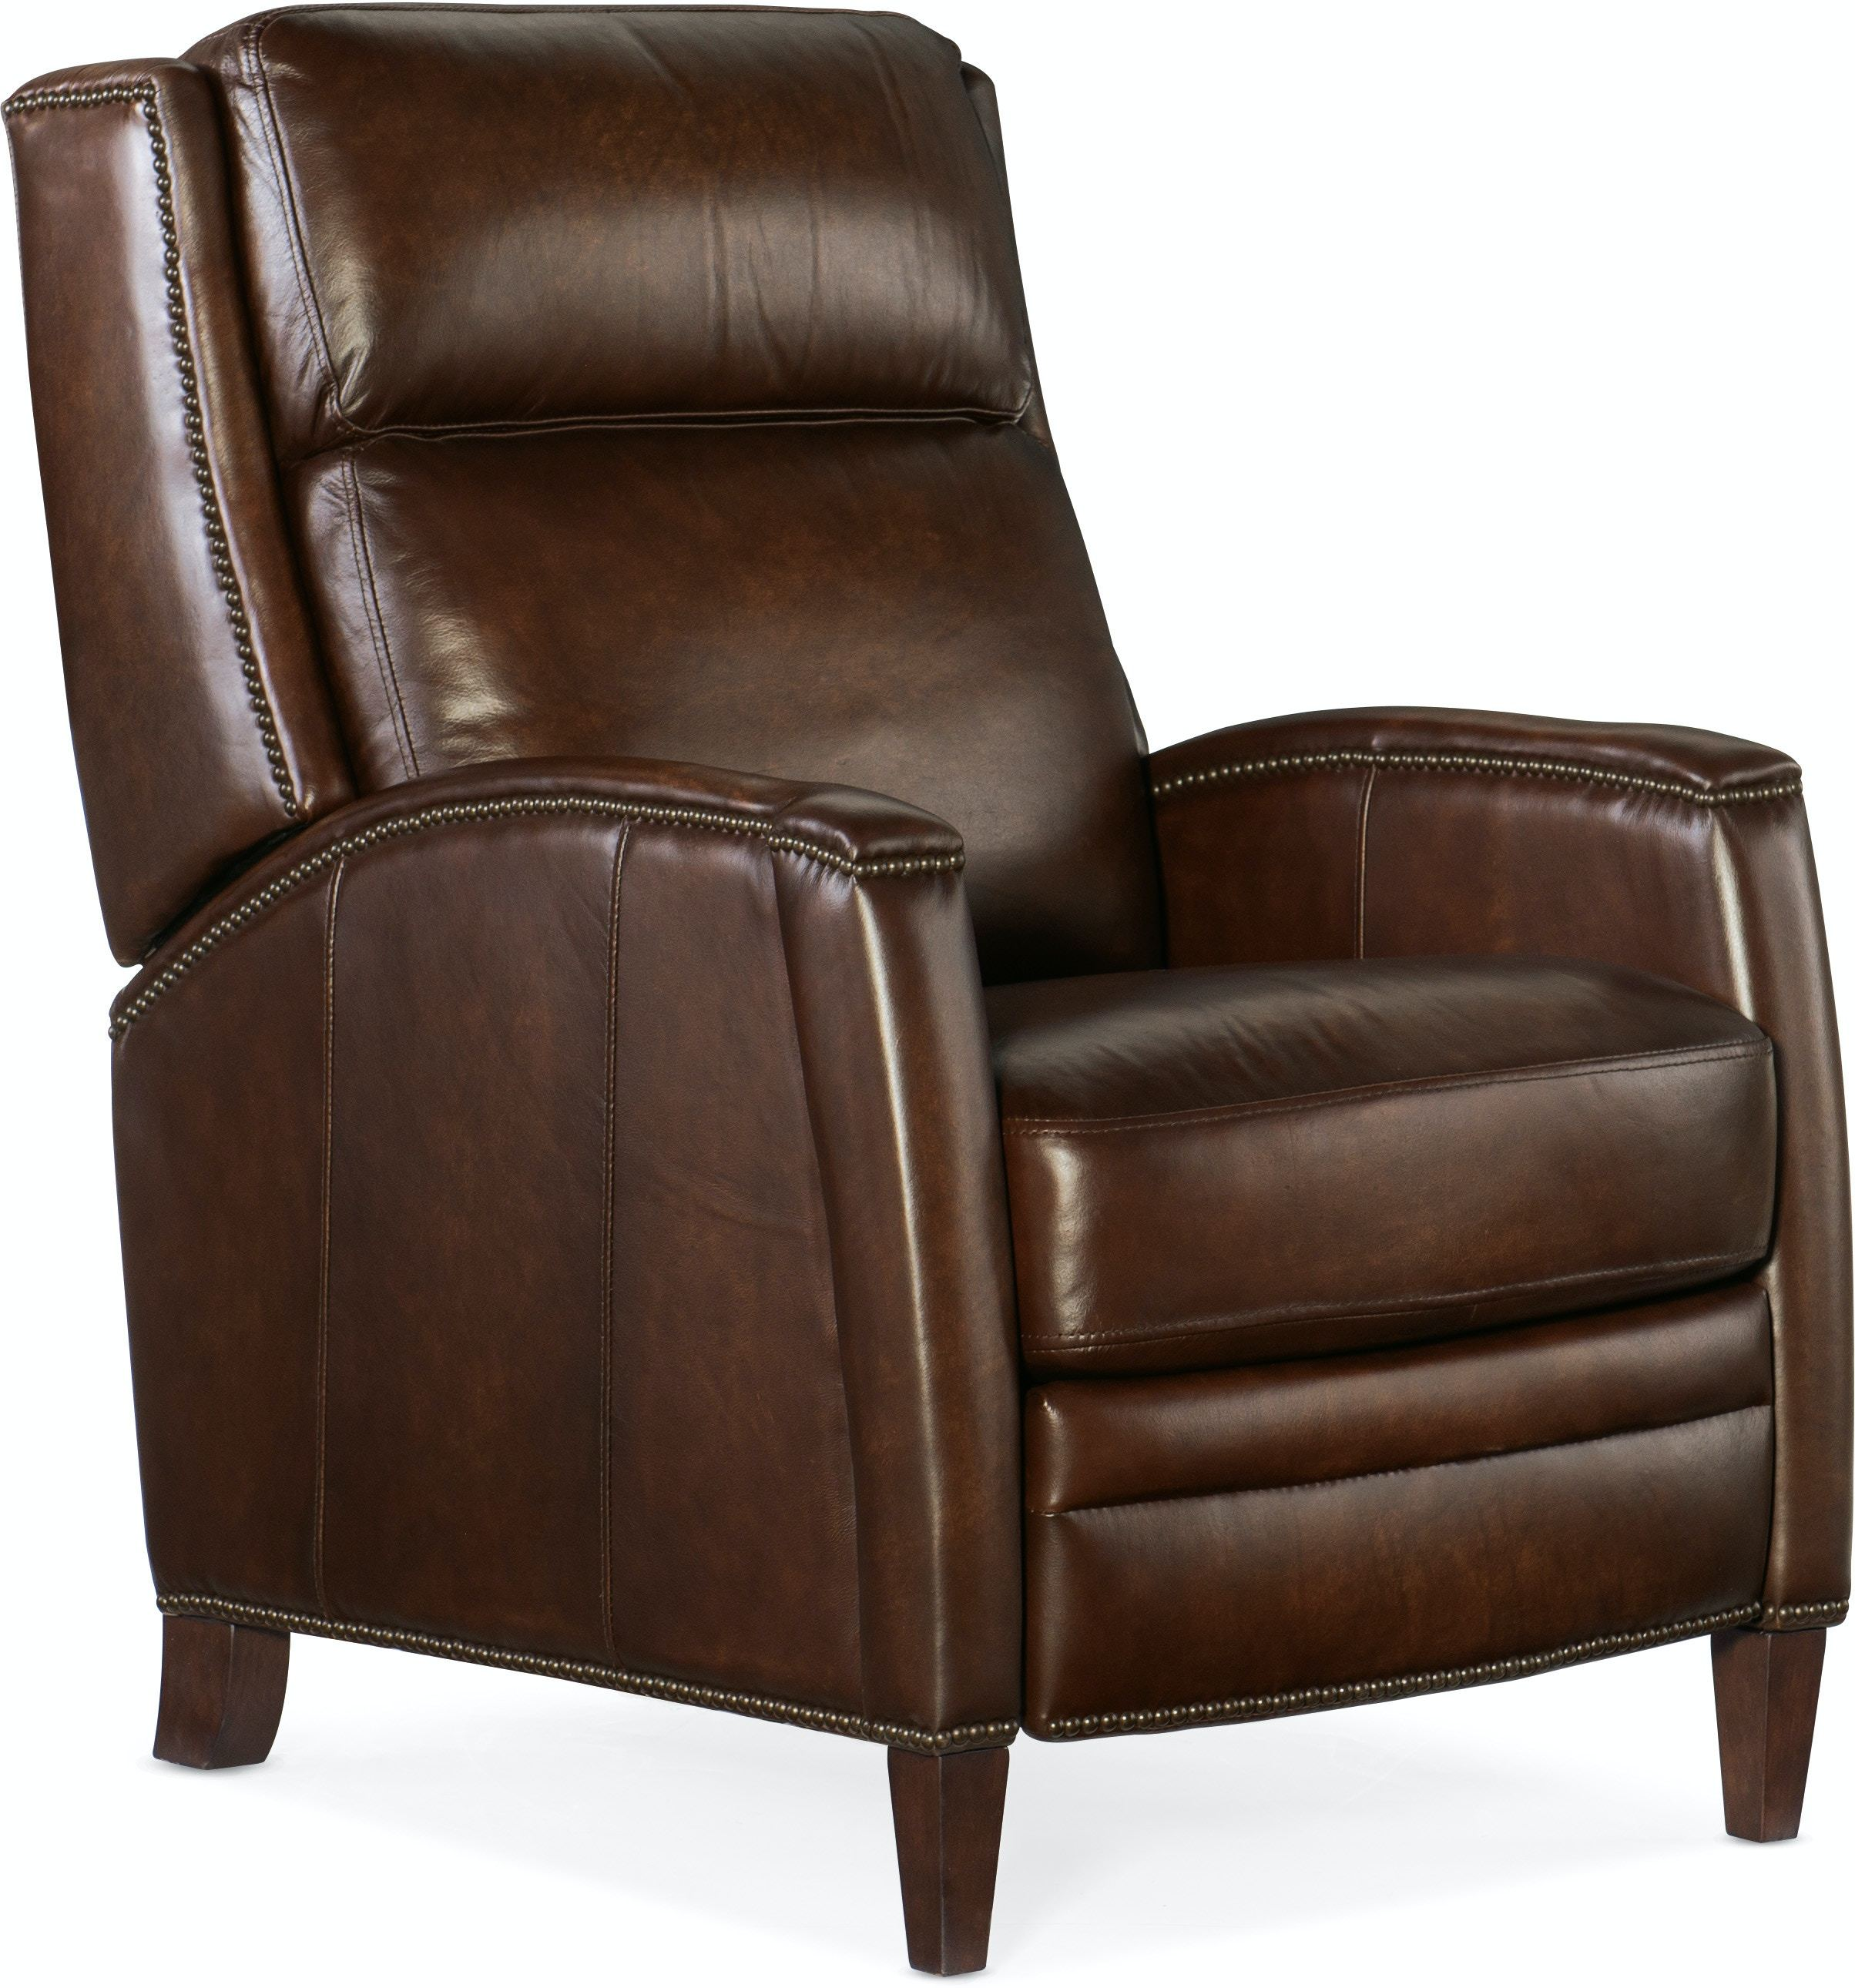 Declan Manual Push Back Recliner By Hooker Furniture Nis272893157 Riley S Furniture Mattress